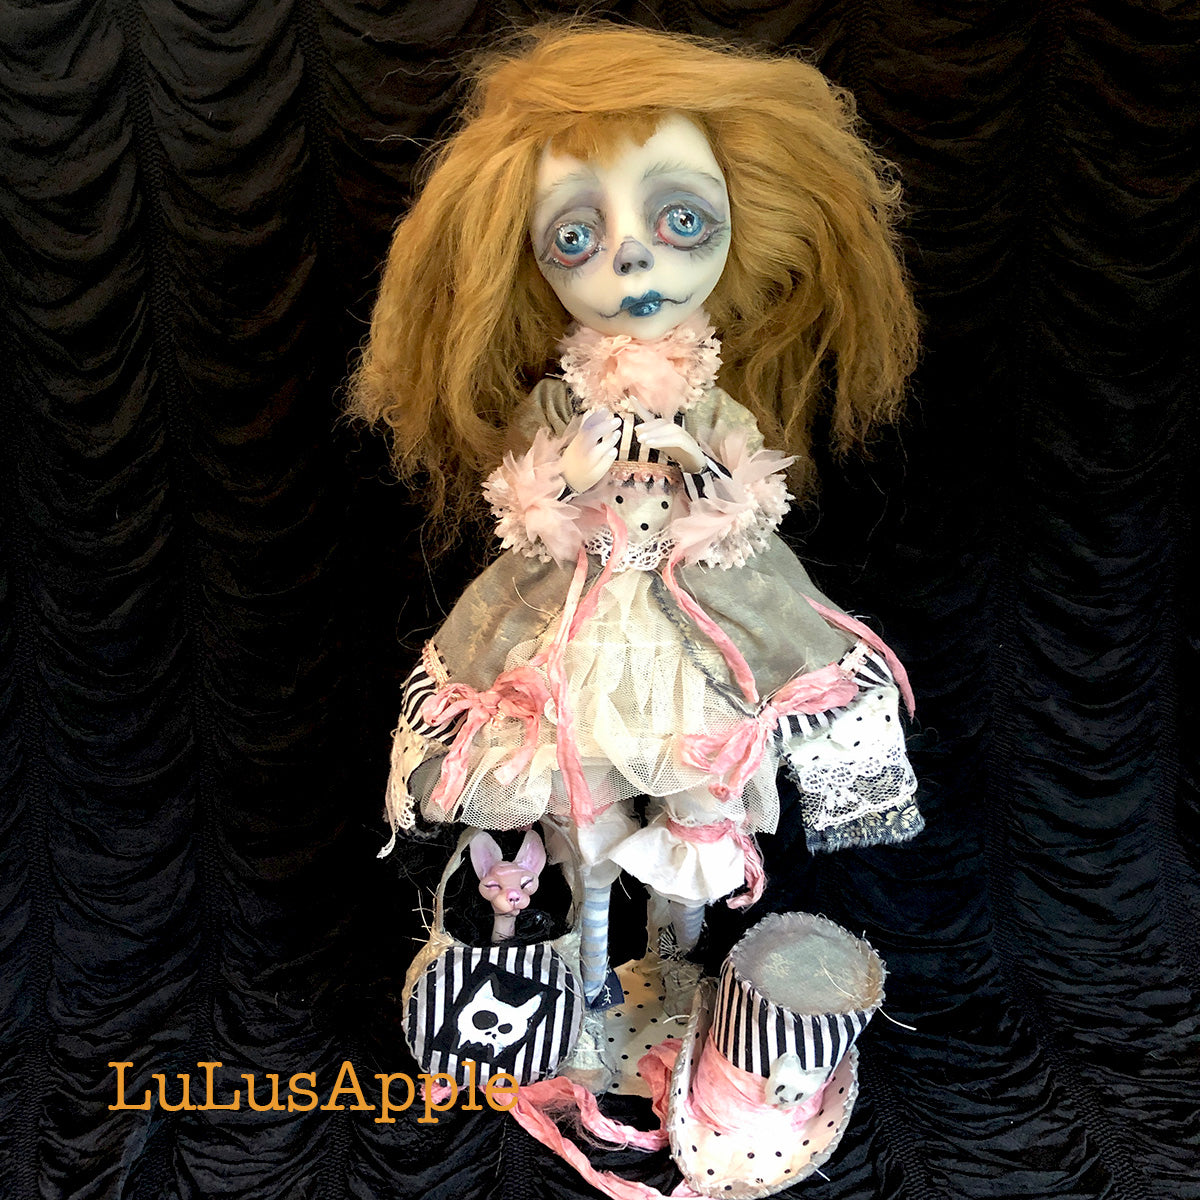 Muriel Ghostly Funeral Girl OOAK Art Doll LuLusApple